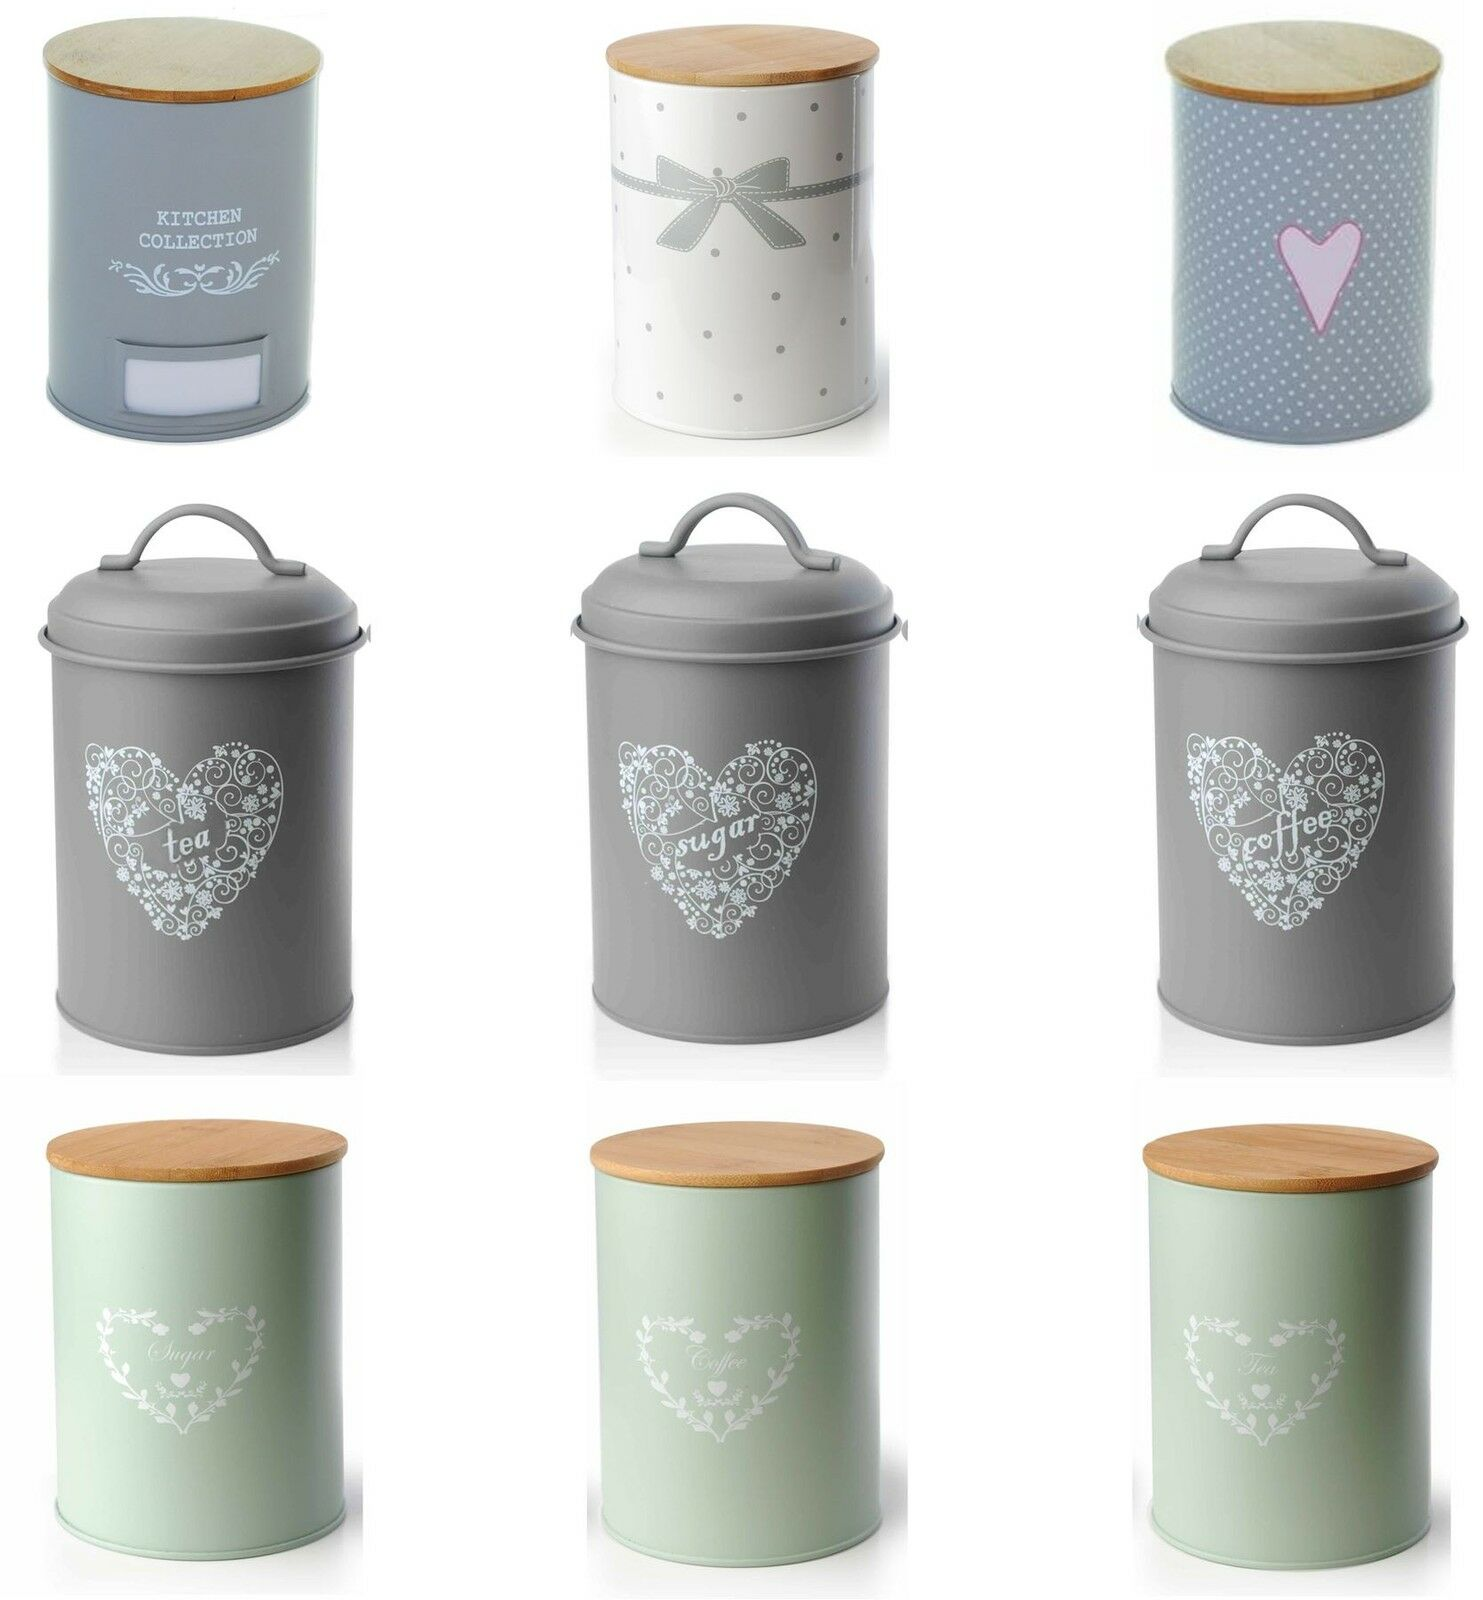 Retro Kitchen Canisters Set Of 3 Vintage Shabby Chic Tea Coffee Sugar Kitchen